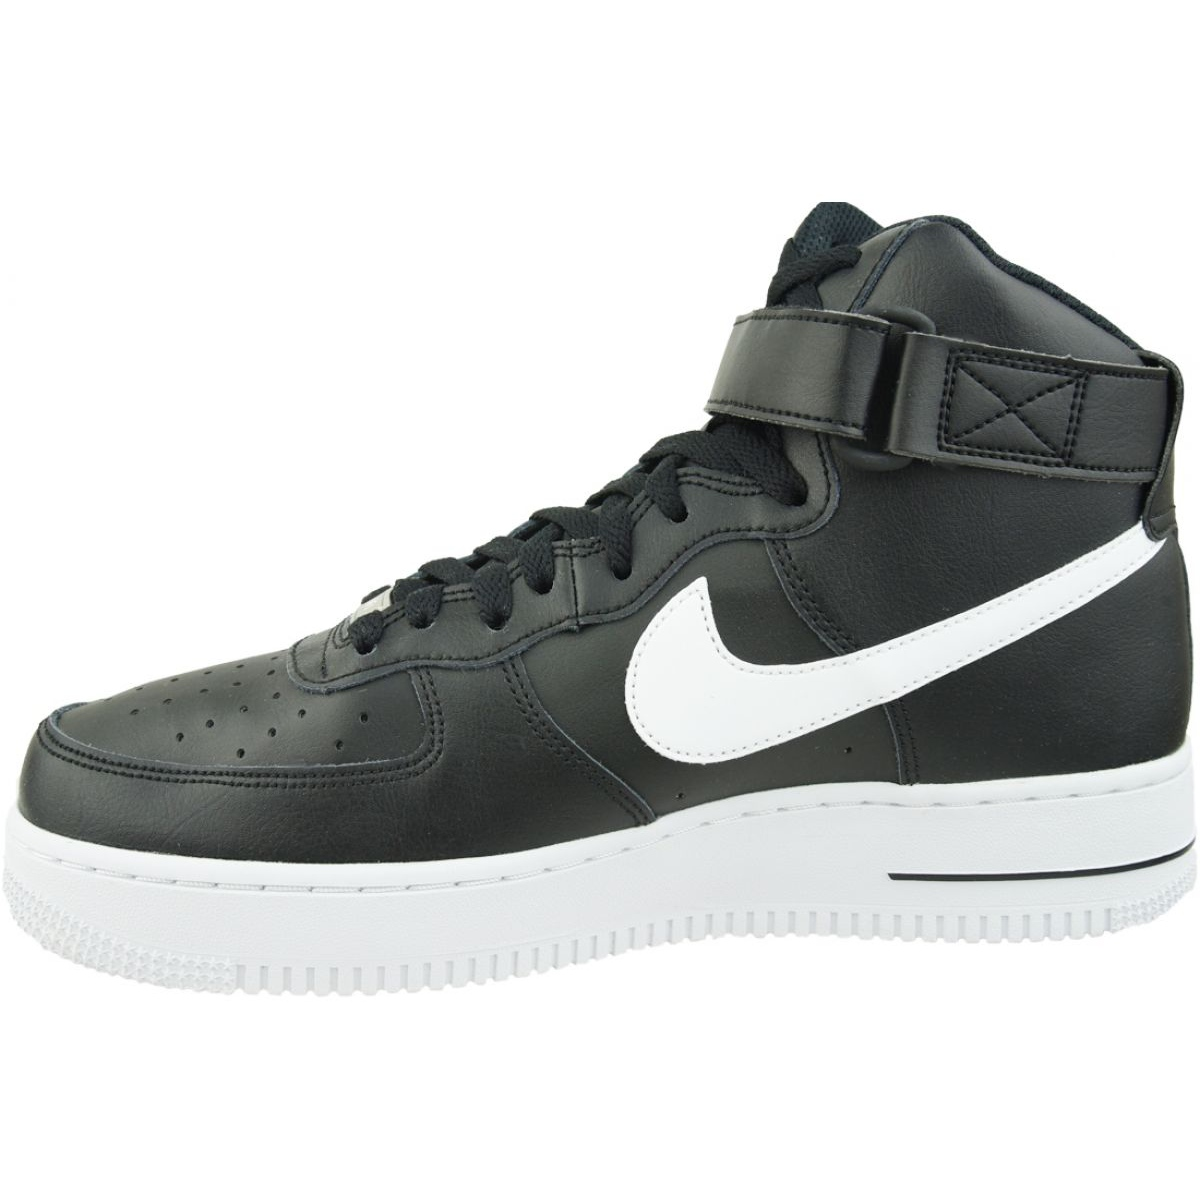 Sapatilhas Nike Air Force 1 High '07 AN20 M CK4369 001 preto